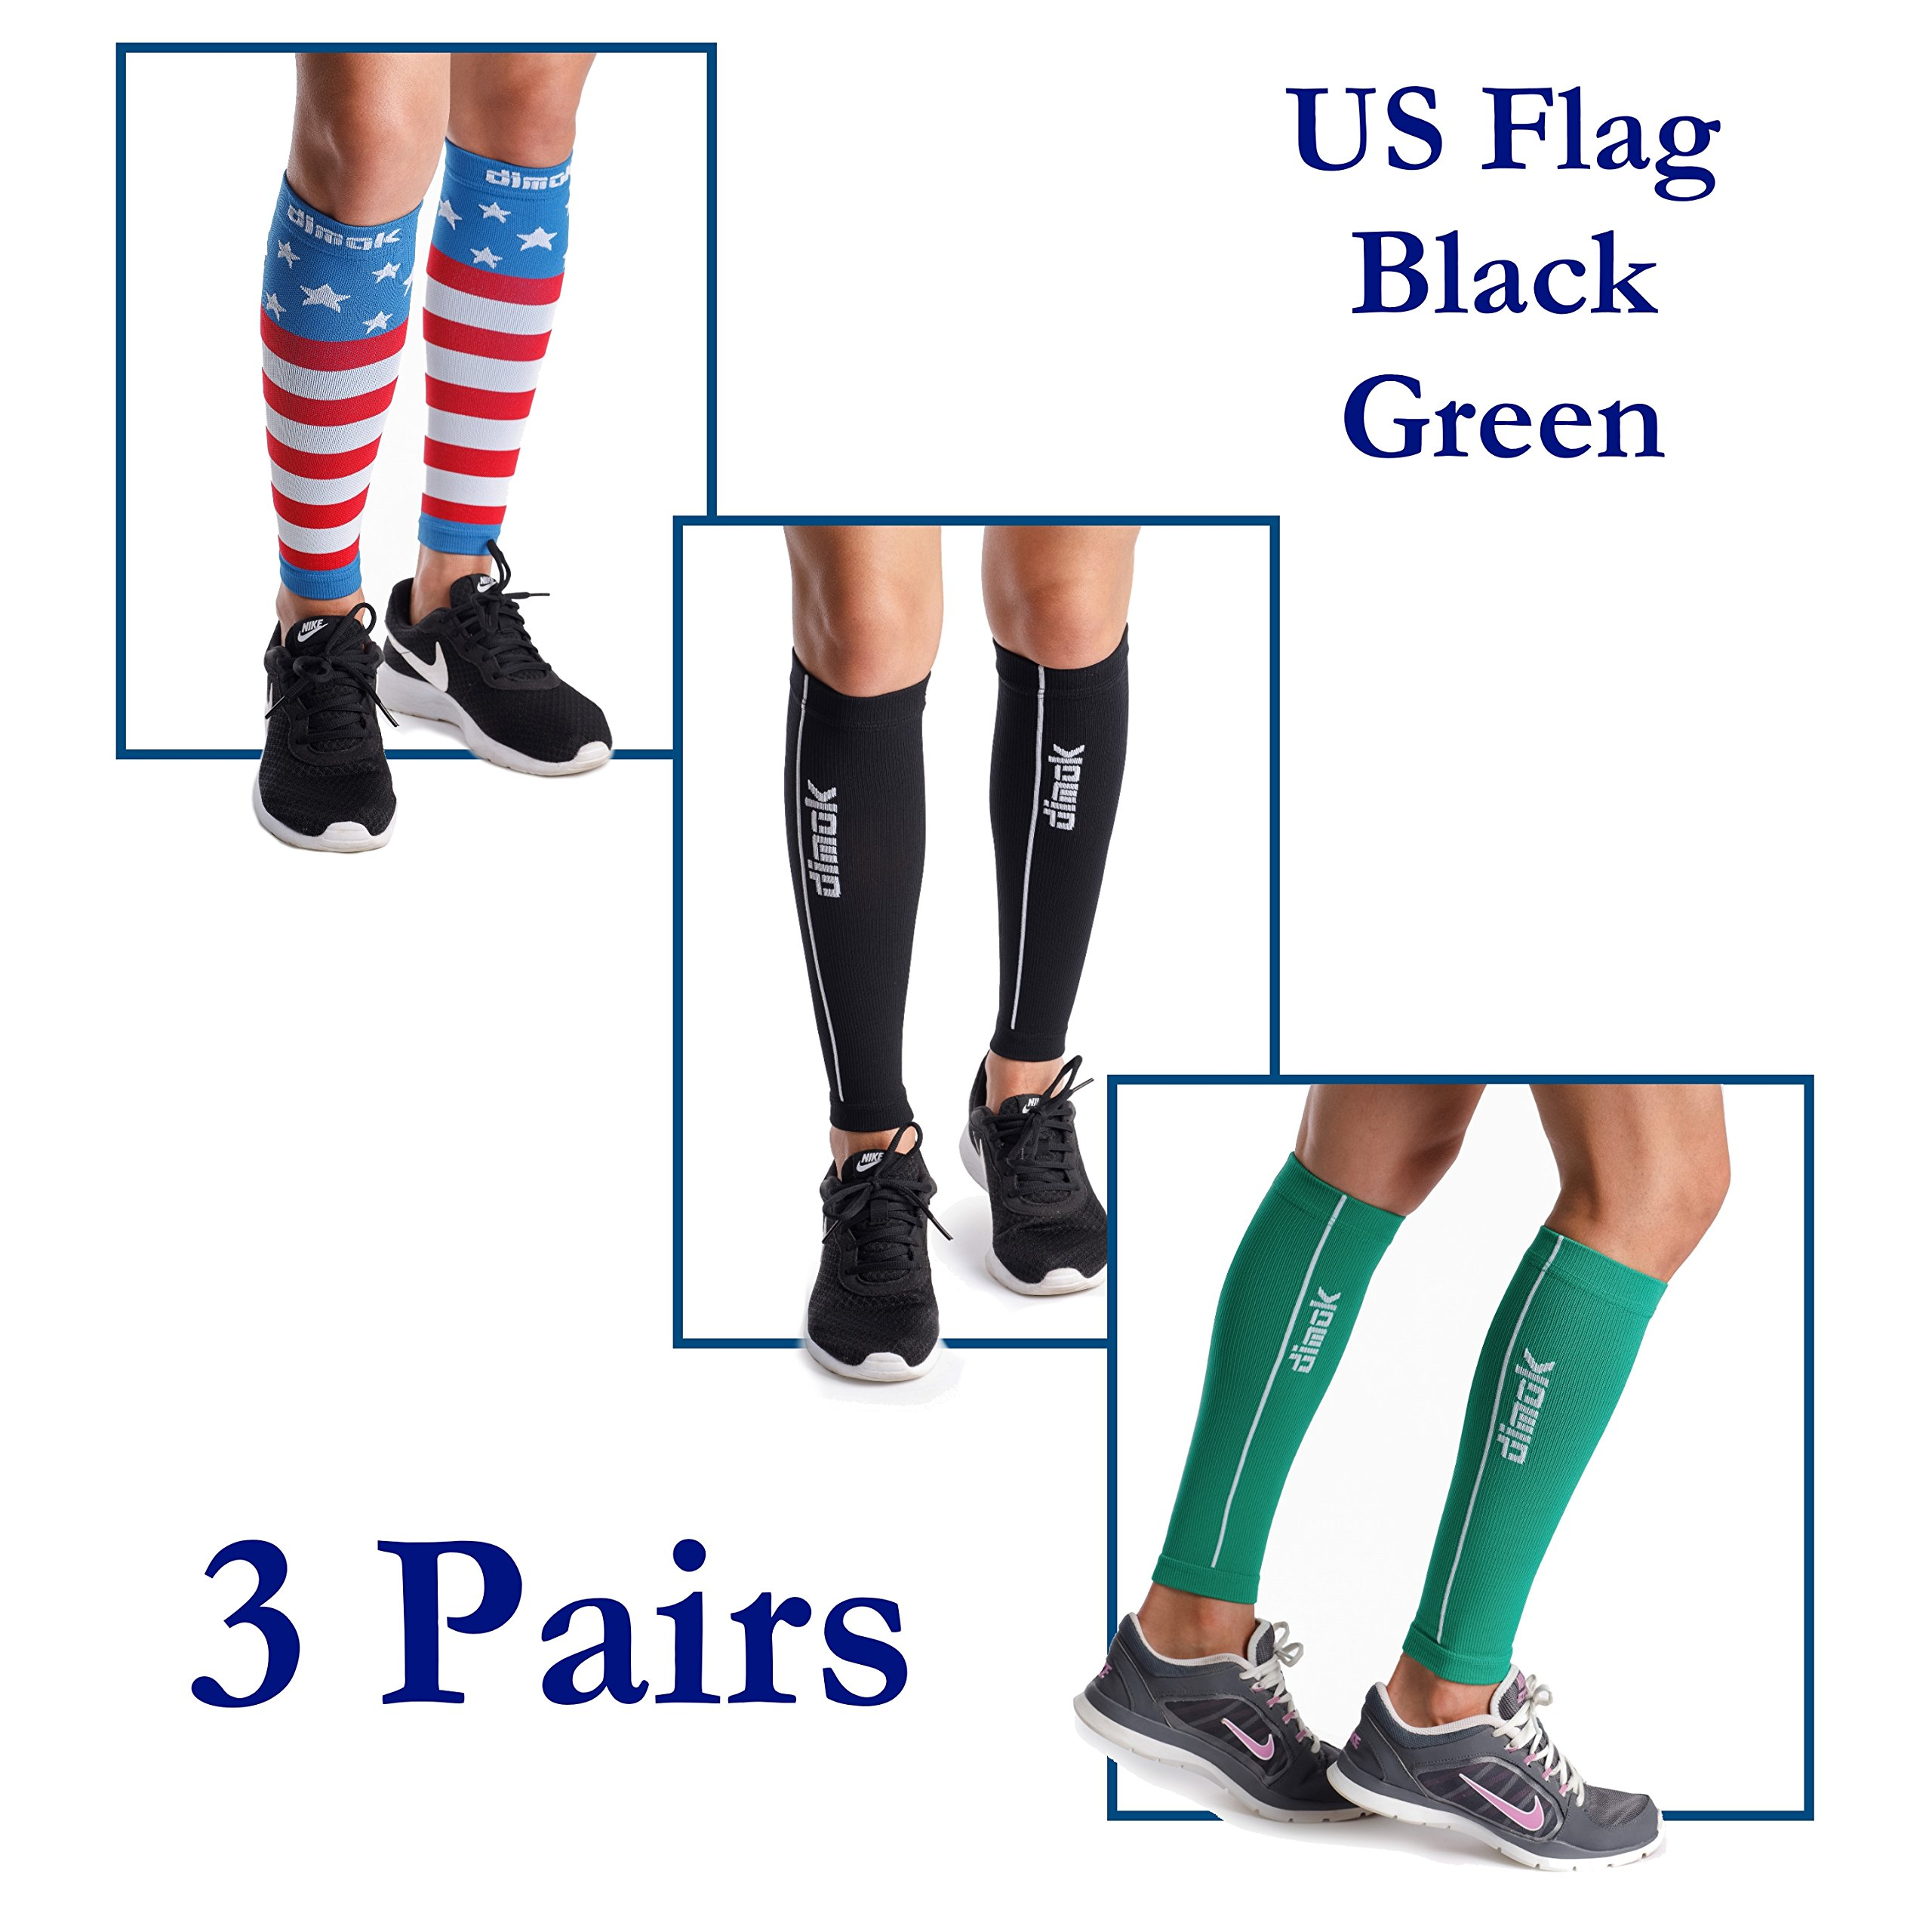 dimok Calf Compression Sleeves Leg Compression Socks - Reduces Shin Splint Muscle Pain Cramps Fatigue - Provides Fast Recovery Better Circulation (USA Flag & Green & Black, M/L)